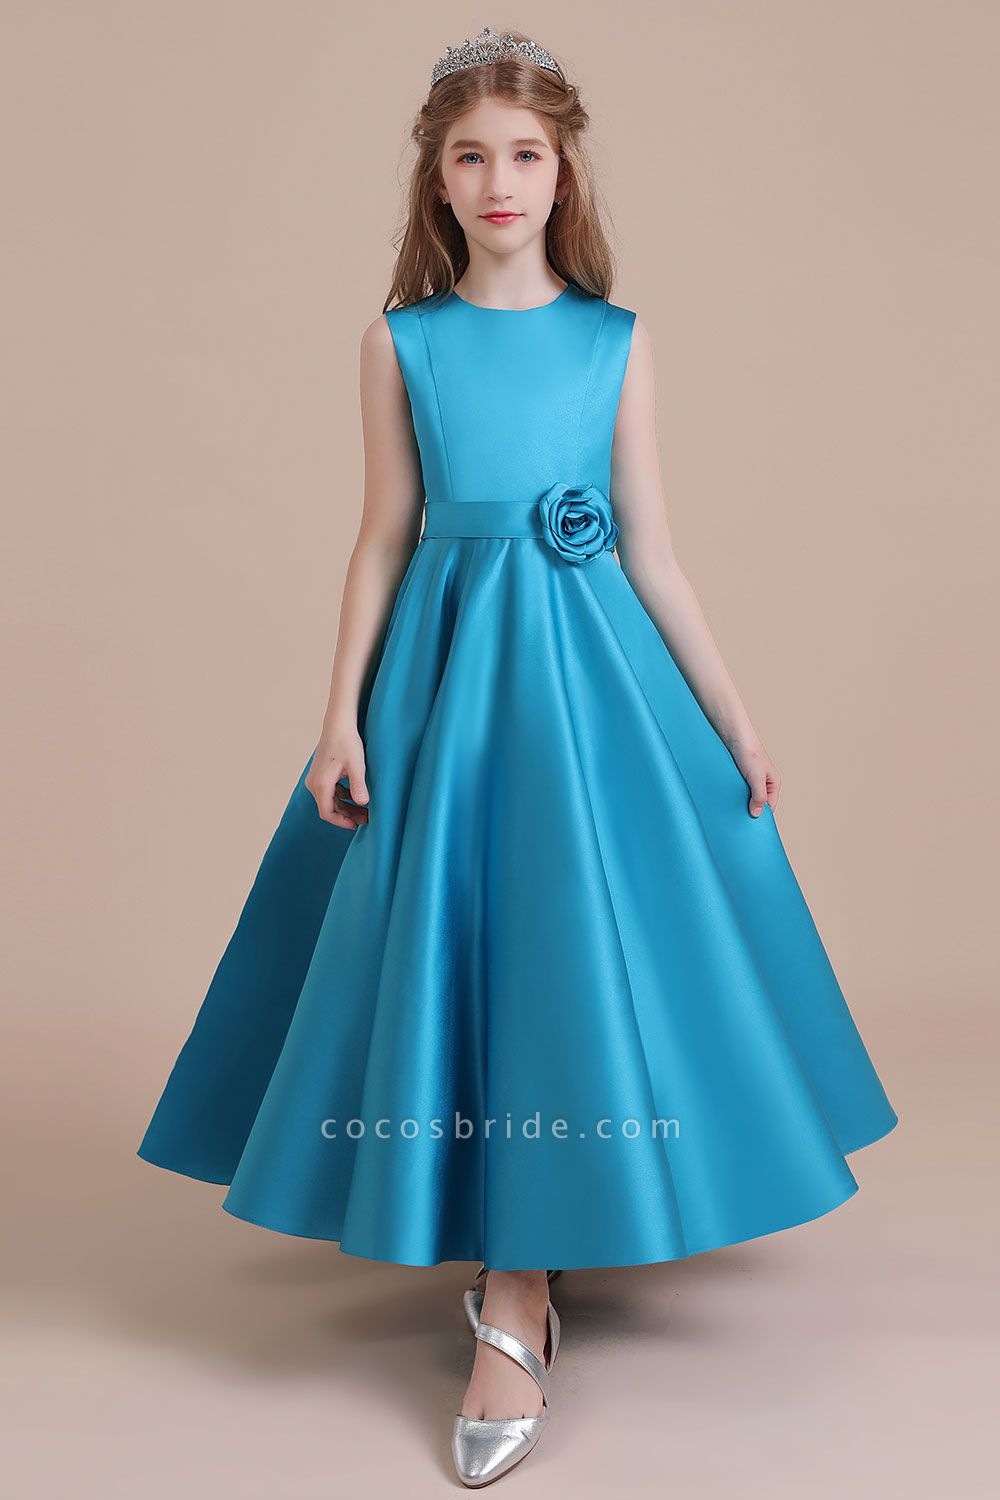 Awesome Satin A-line Flower Girl Dress